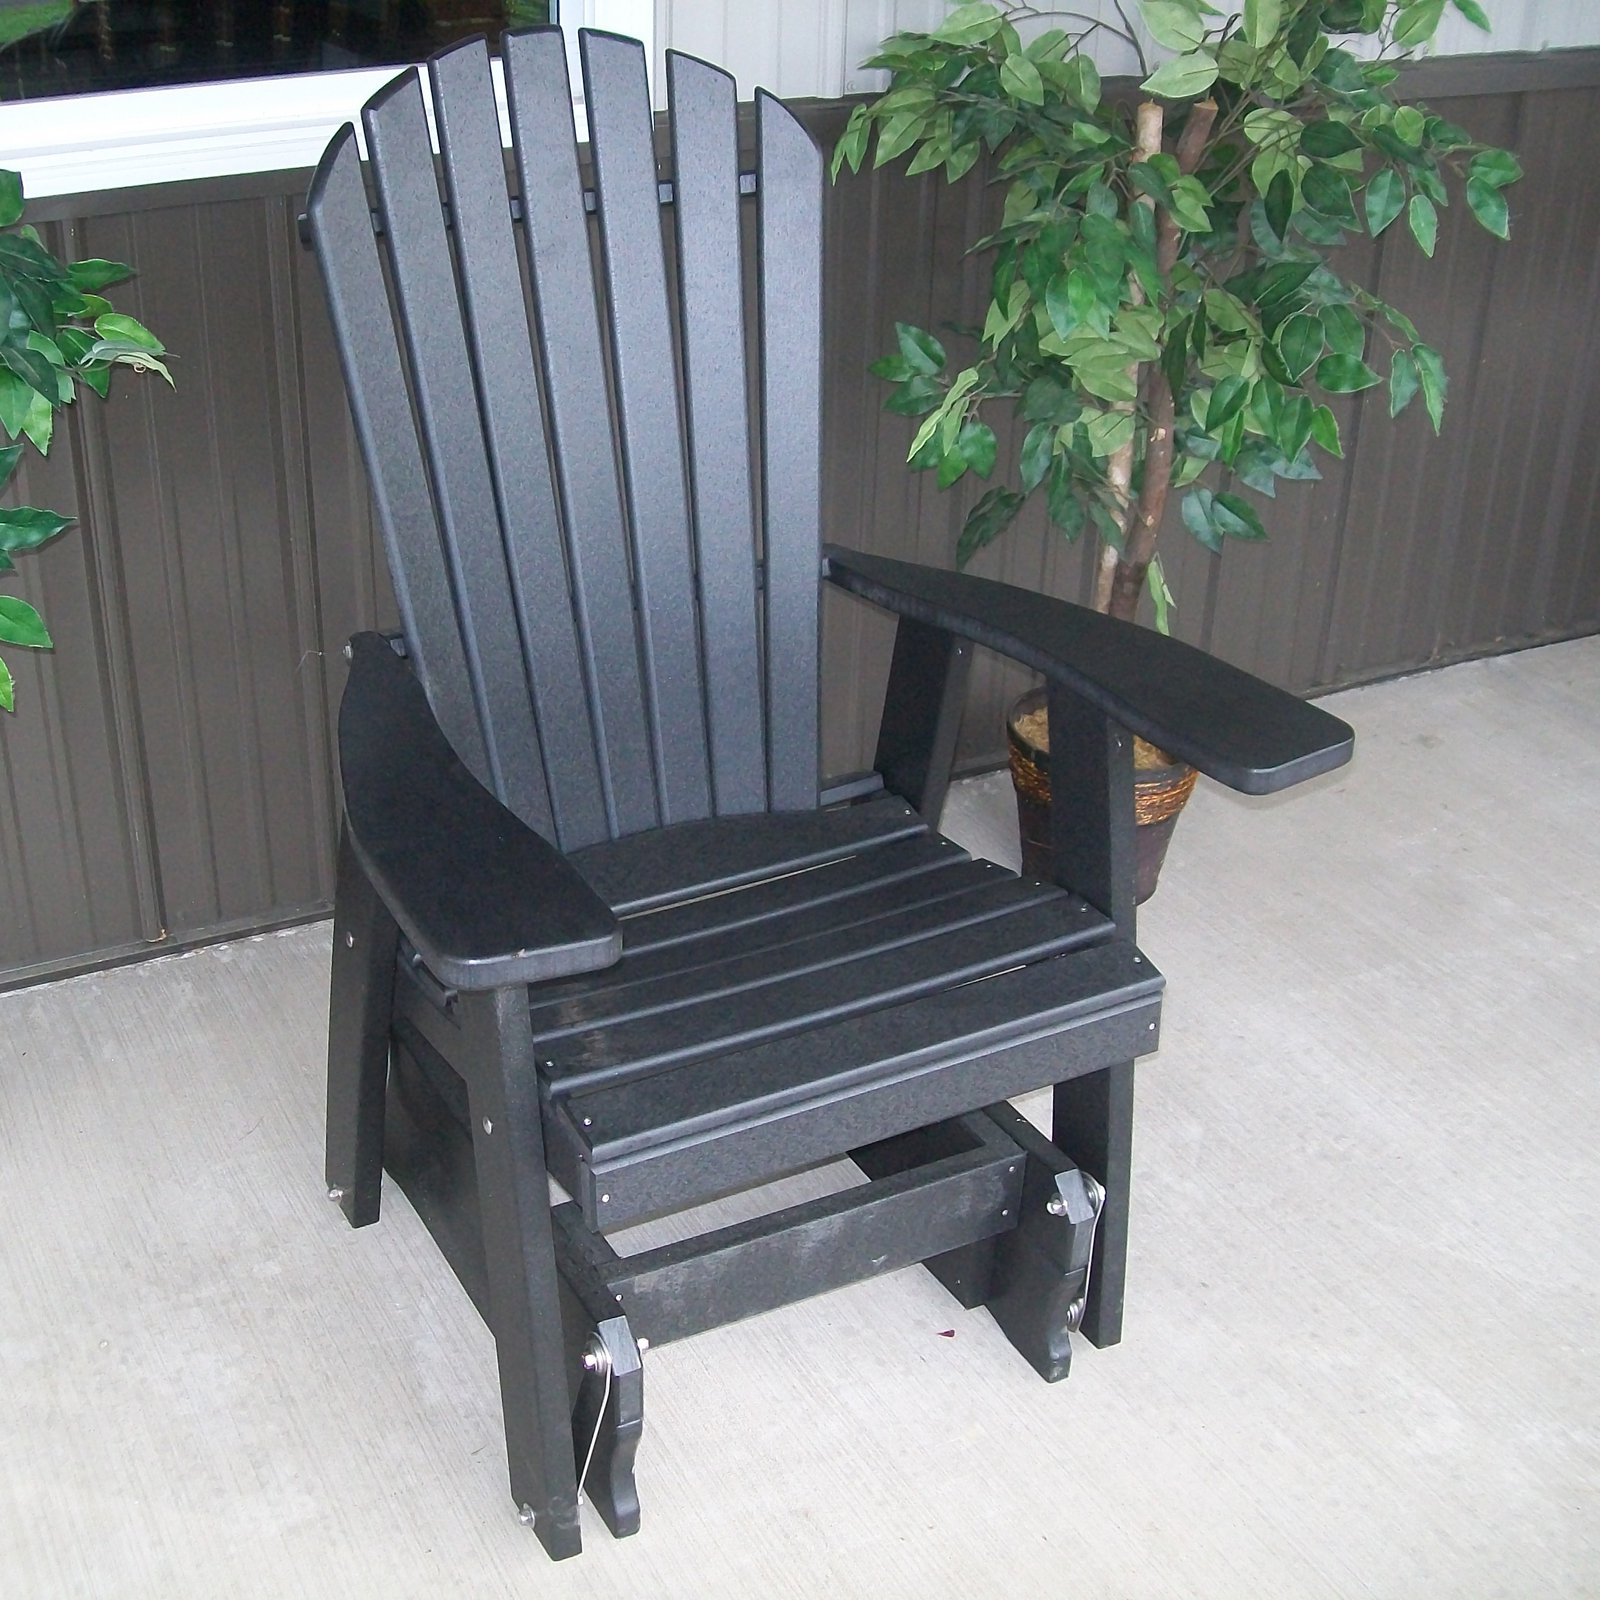 A & L Furniture Adirondack Poly Recycled Plastic 2 ft. Glider Chair